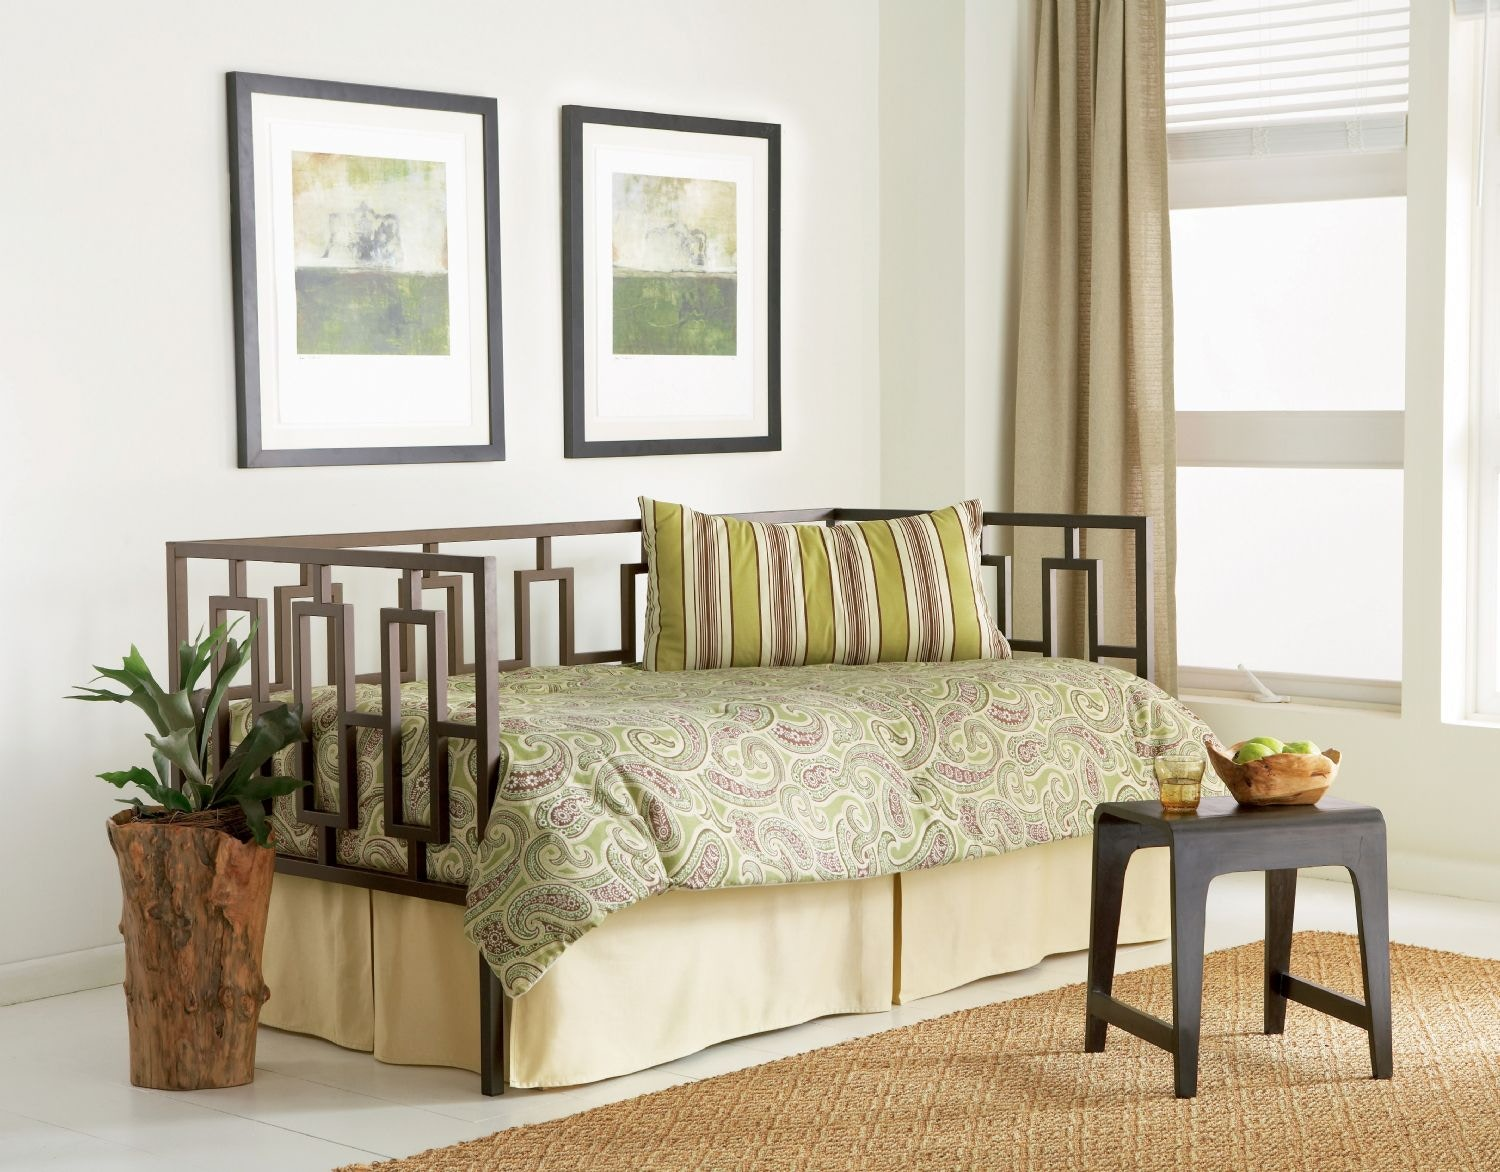 B60043. Miami Daybed · Carol House Discount Price $377.00